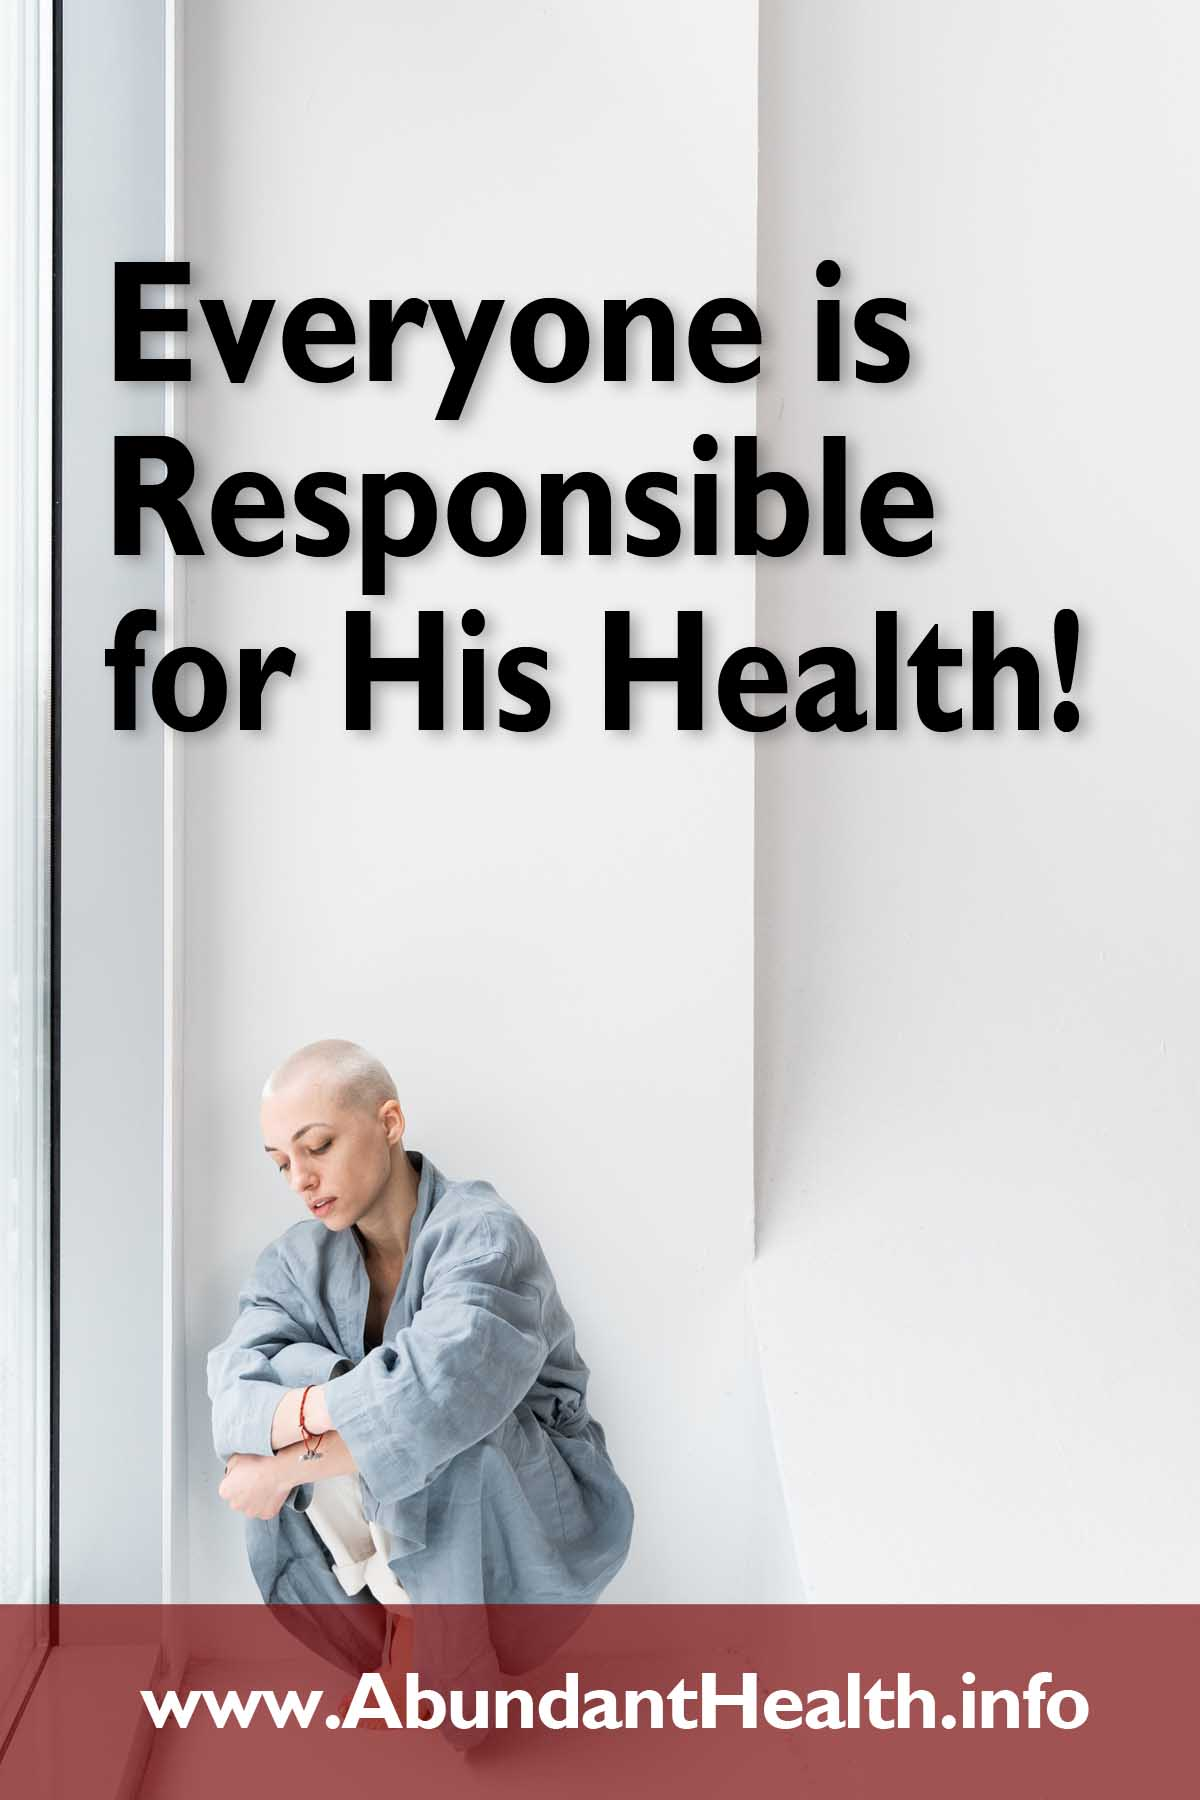 Everyone is Responsible for His Health!